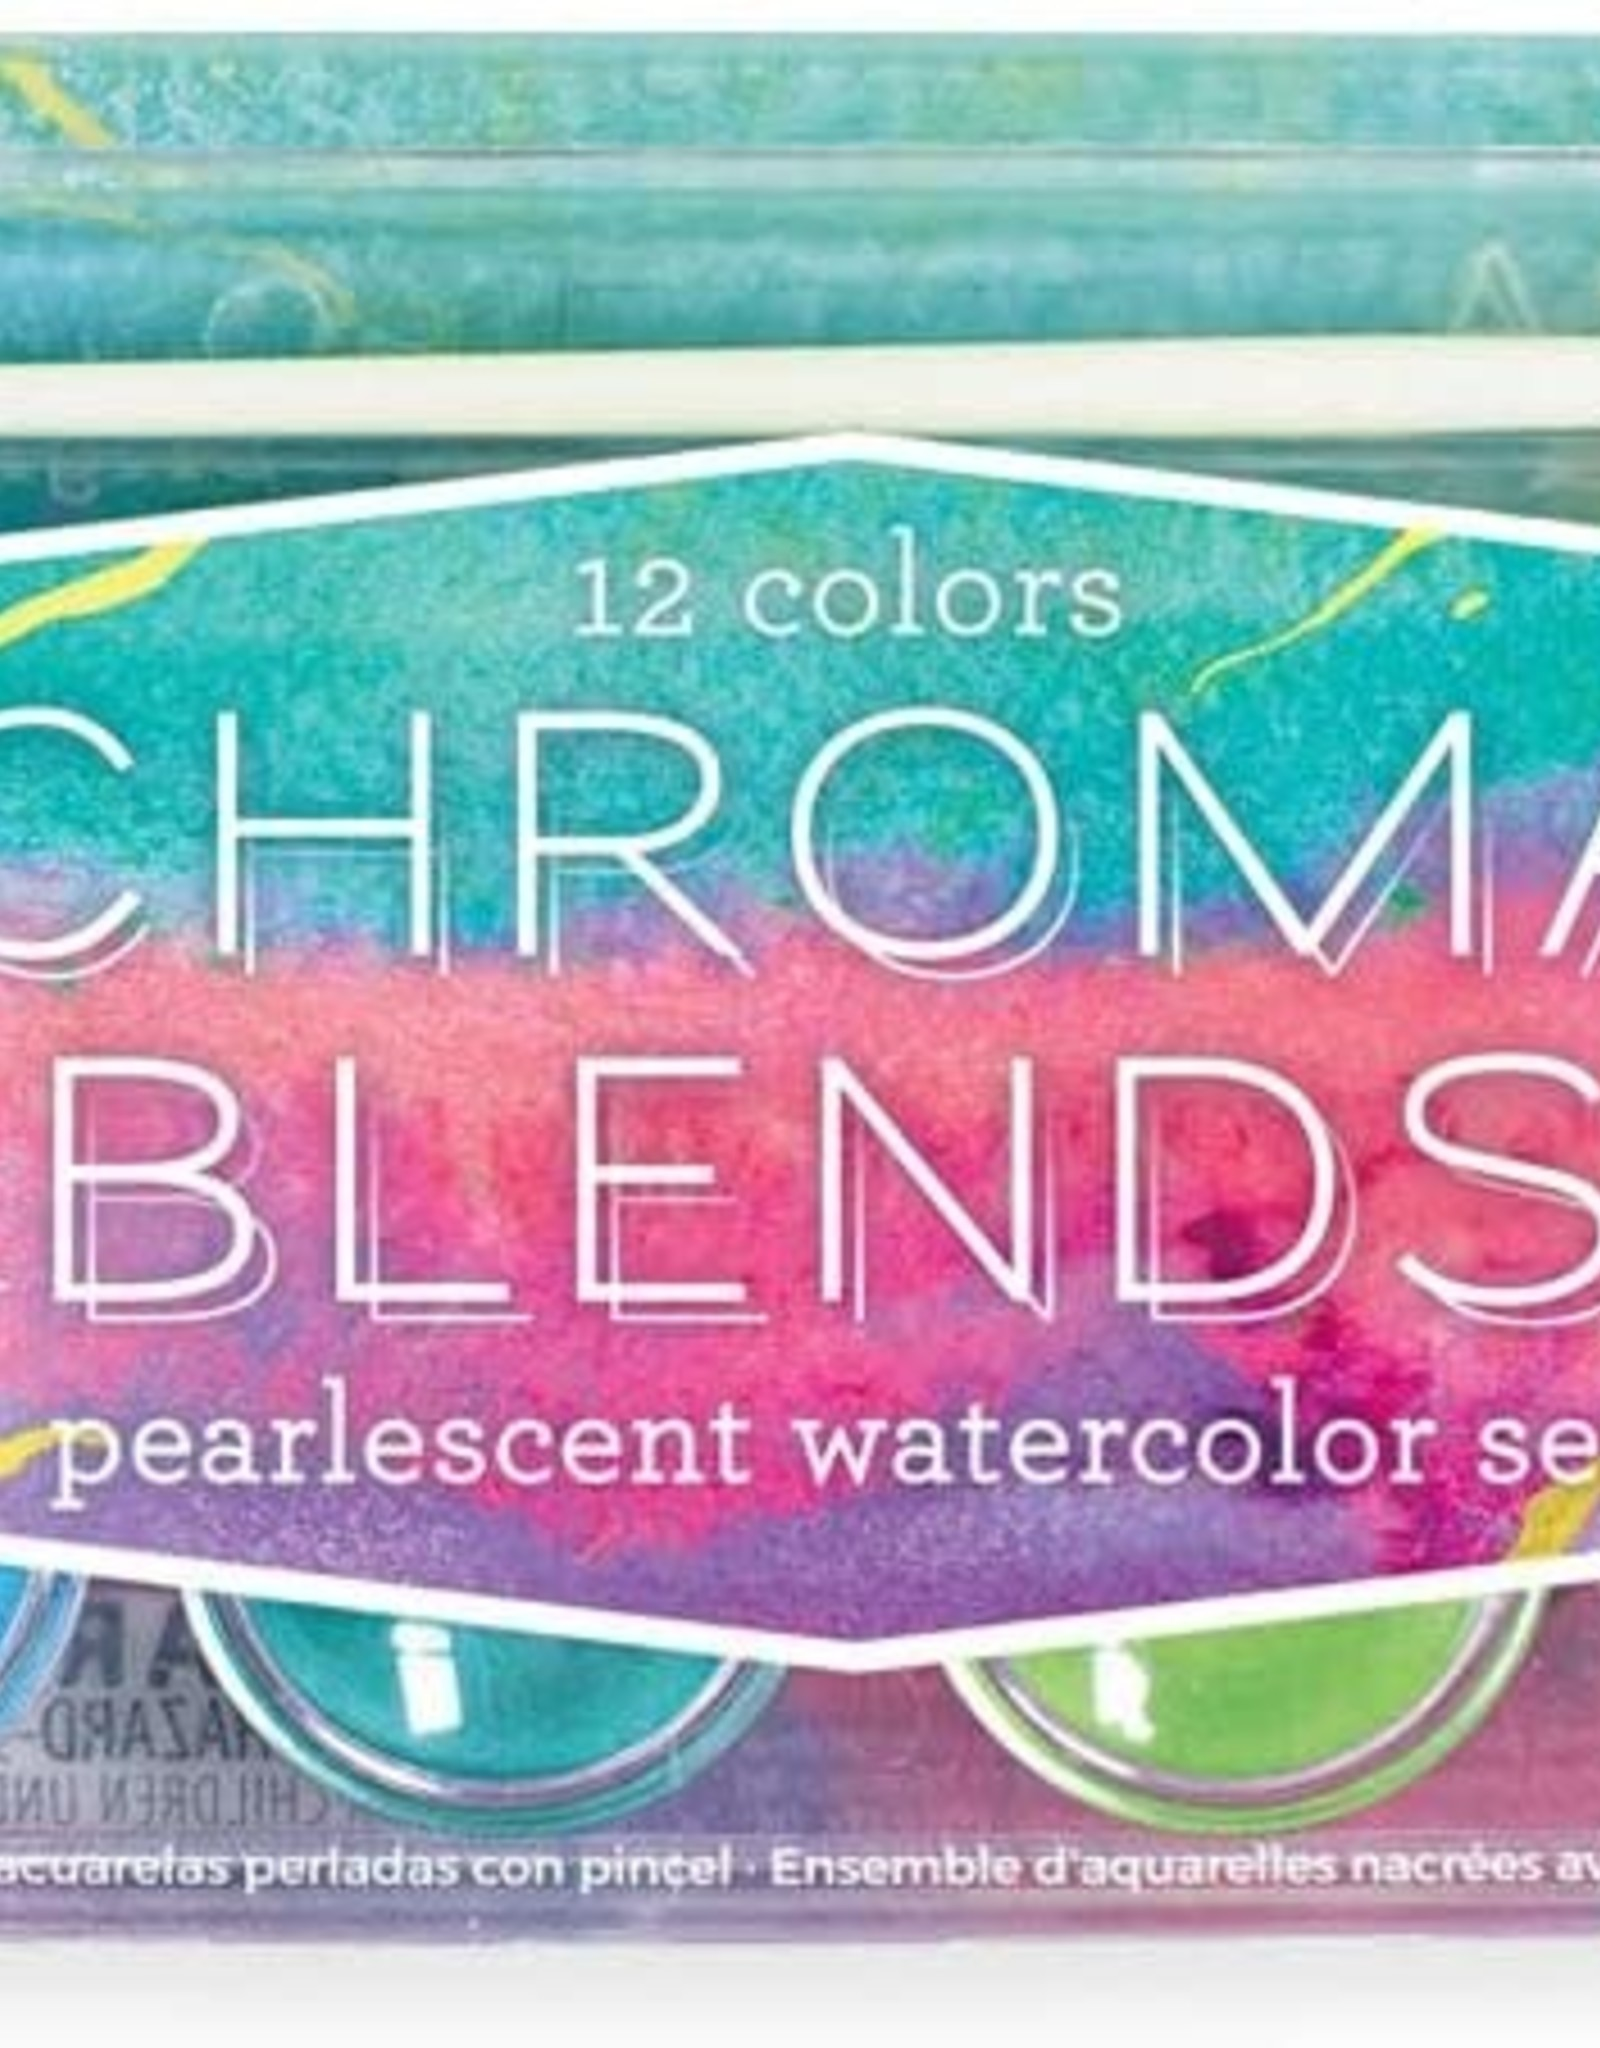 Chroma Blends Pearlescent